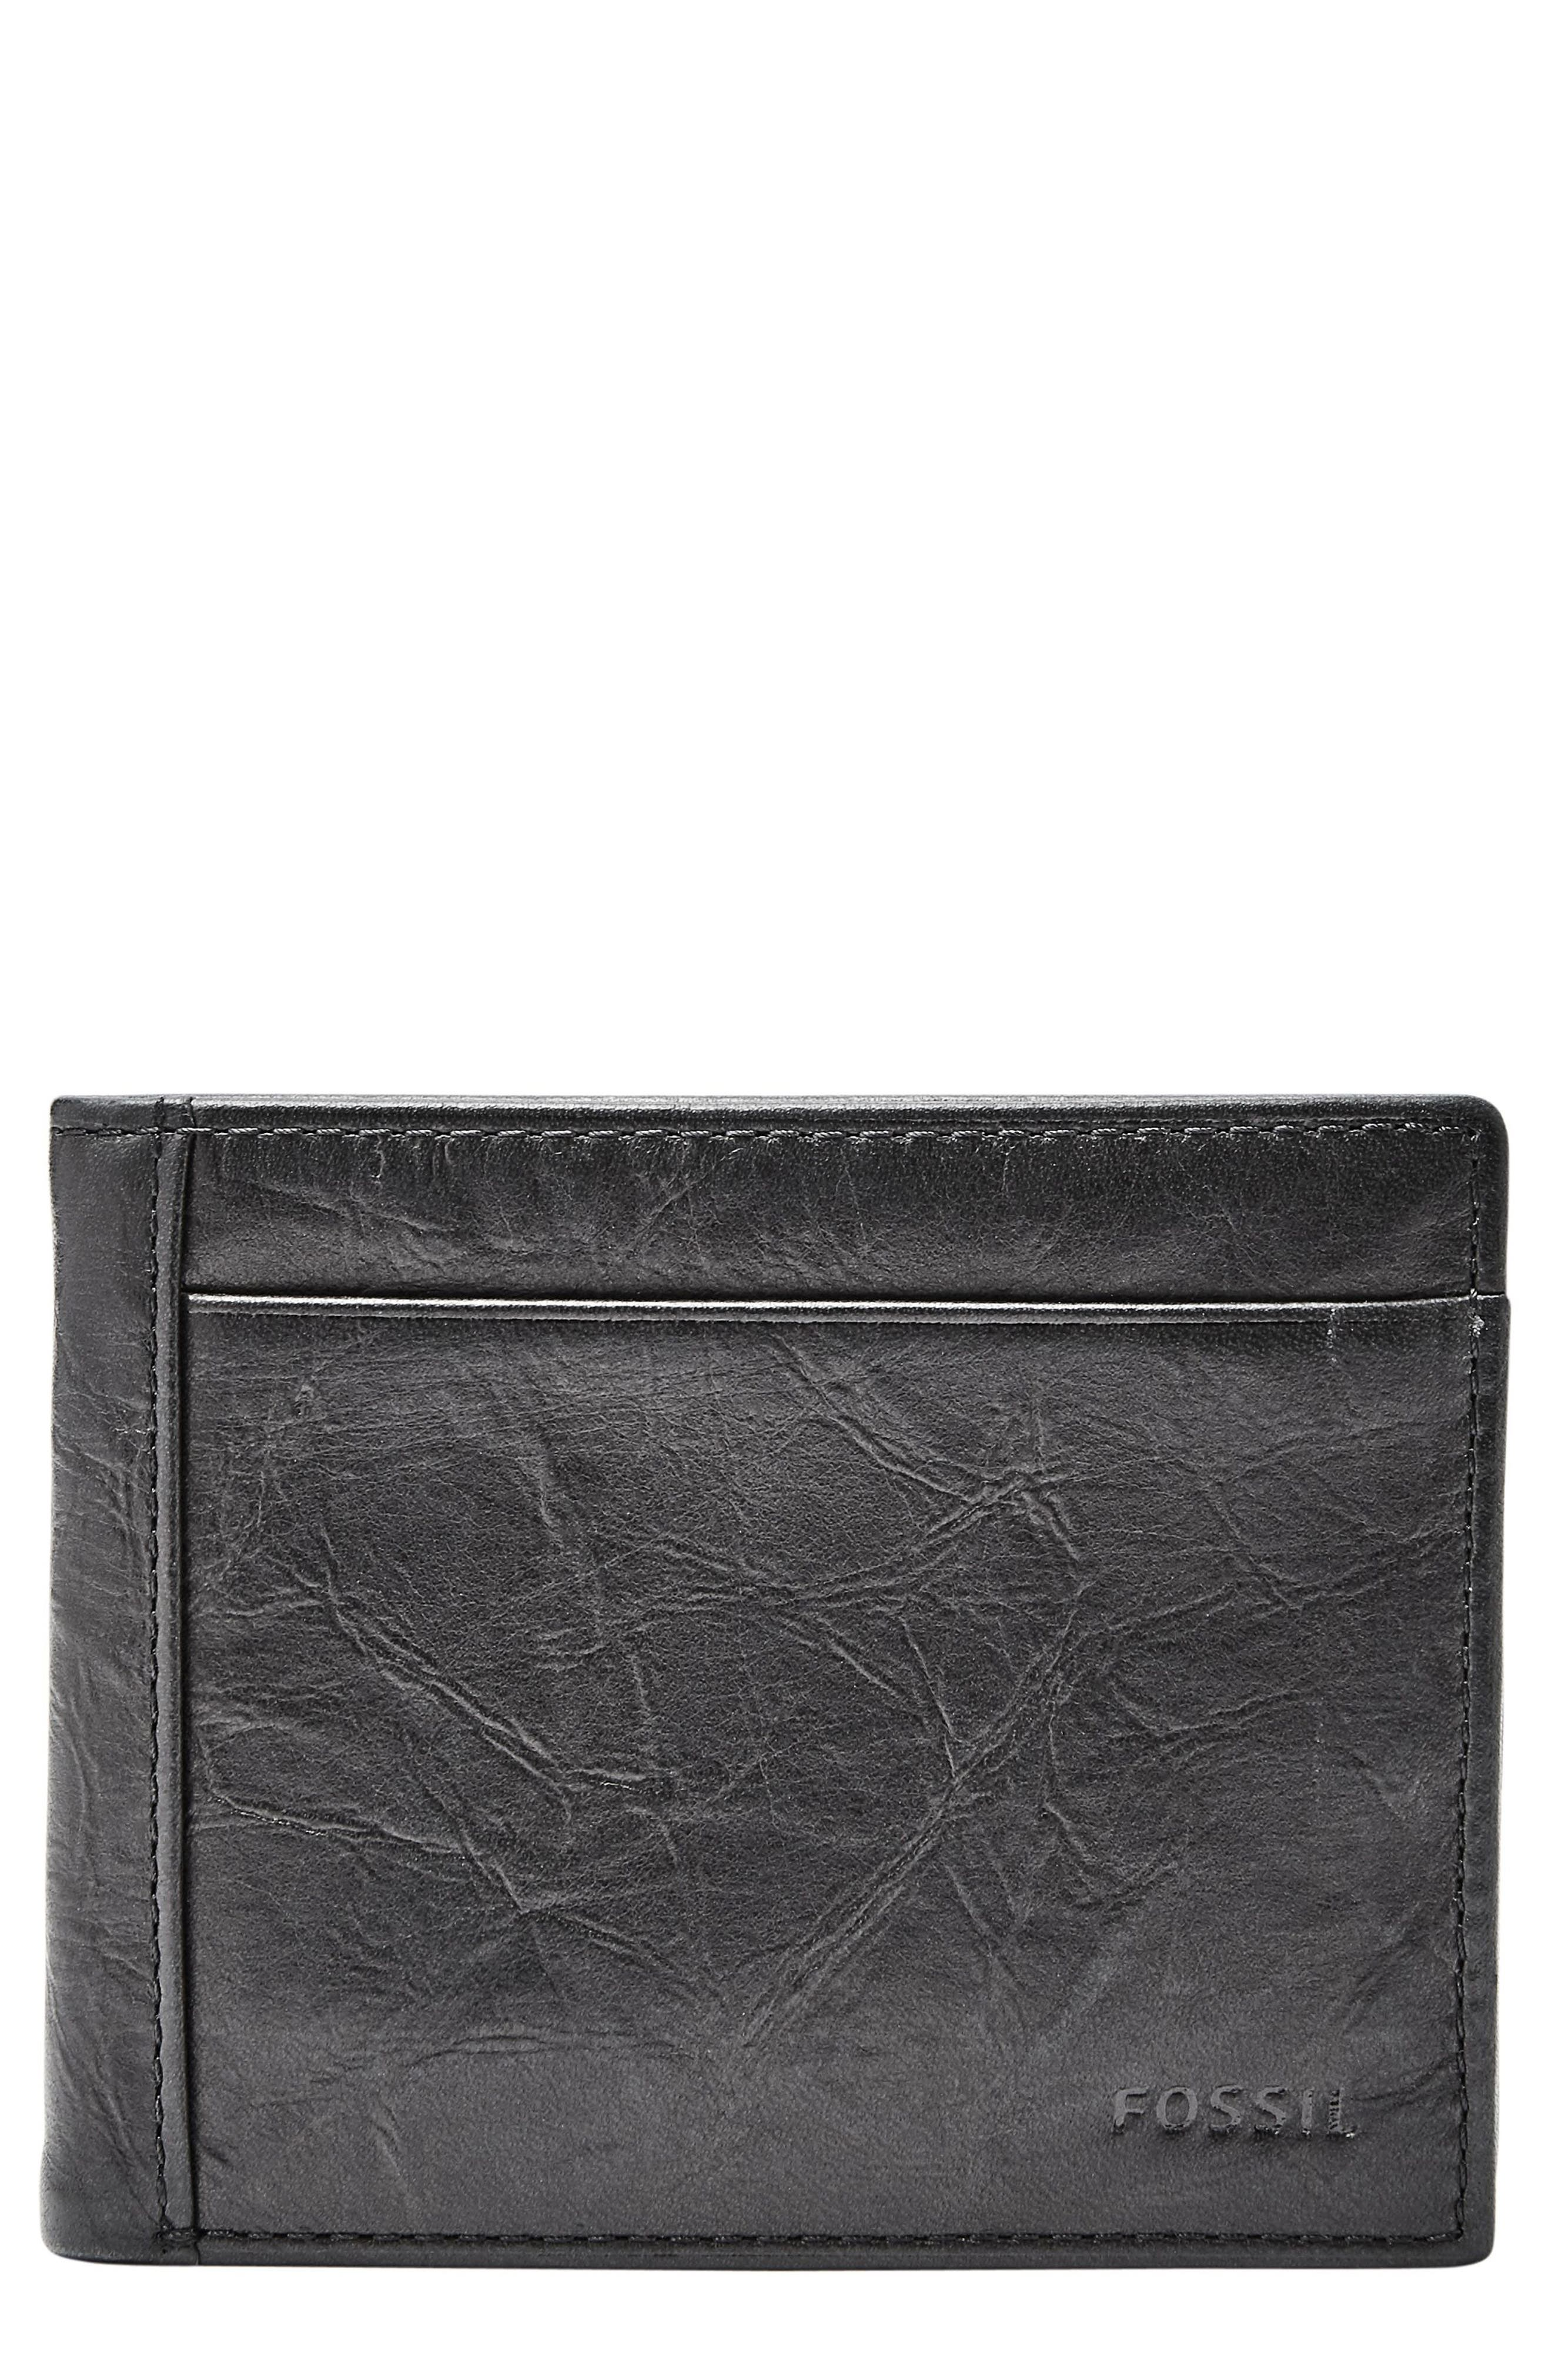 Main Image - Fossil Leather Wallet